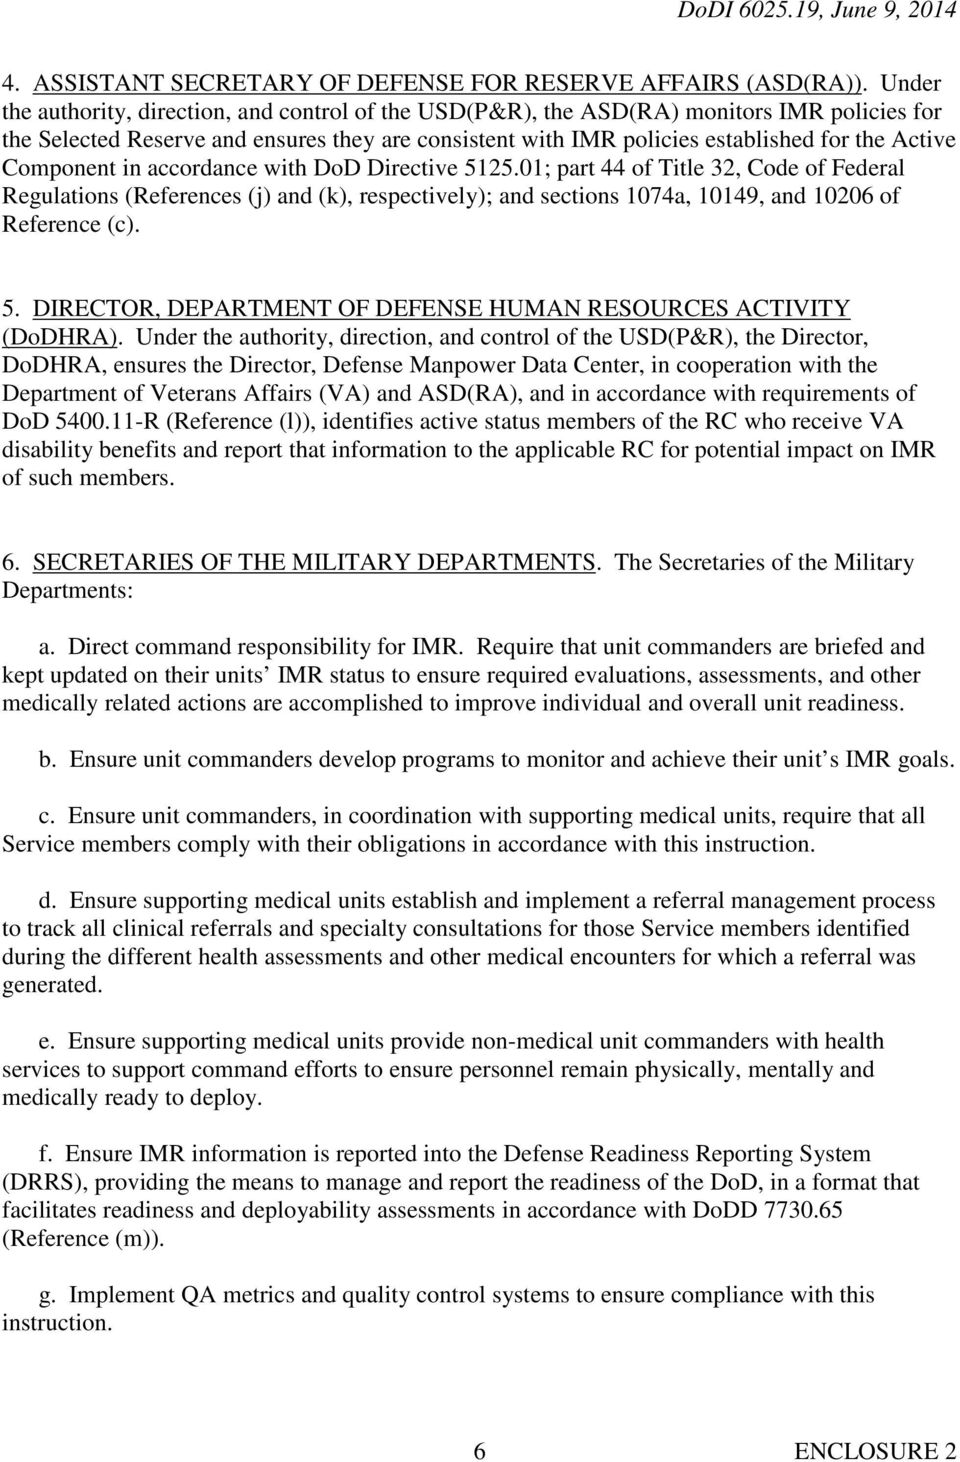 Component in accordance with DoD Directive 5125.01; part 44 of Title 32, Code of Federal Regulations (References (j) and (k), respectively); and sections 1074a, 10149, and 10206 of Reference (c). 5. DIRECTOR, DEPARTMENT OF DEFENSE HUMAN RESOURCES ACTIVITY (DoDHRA).